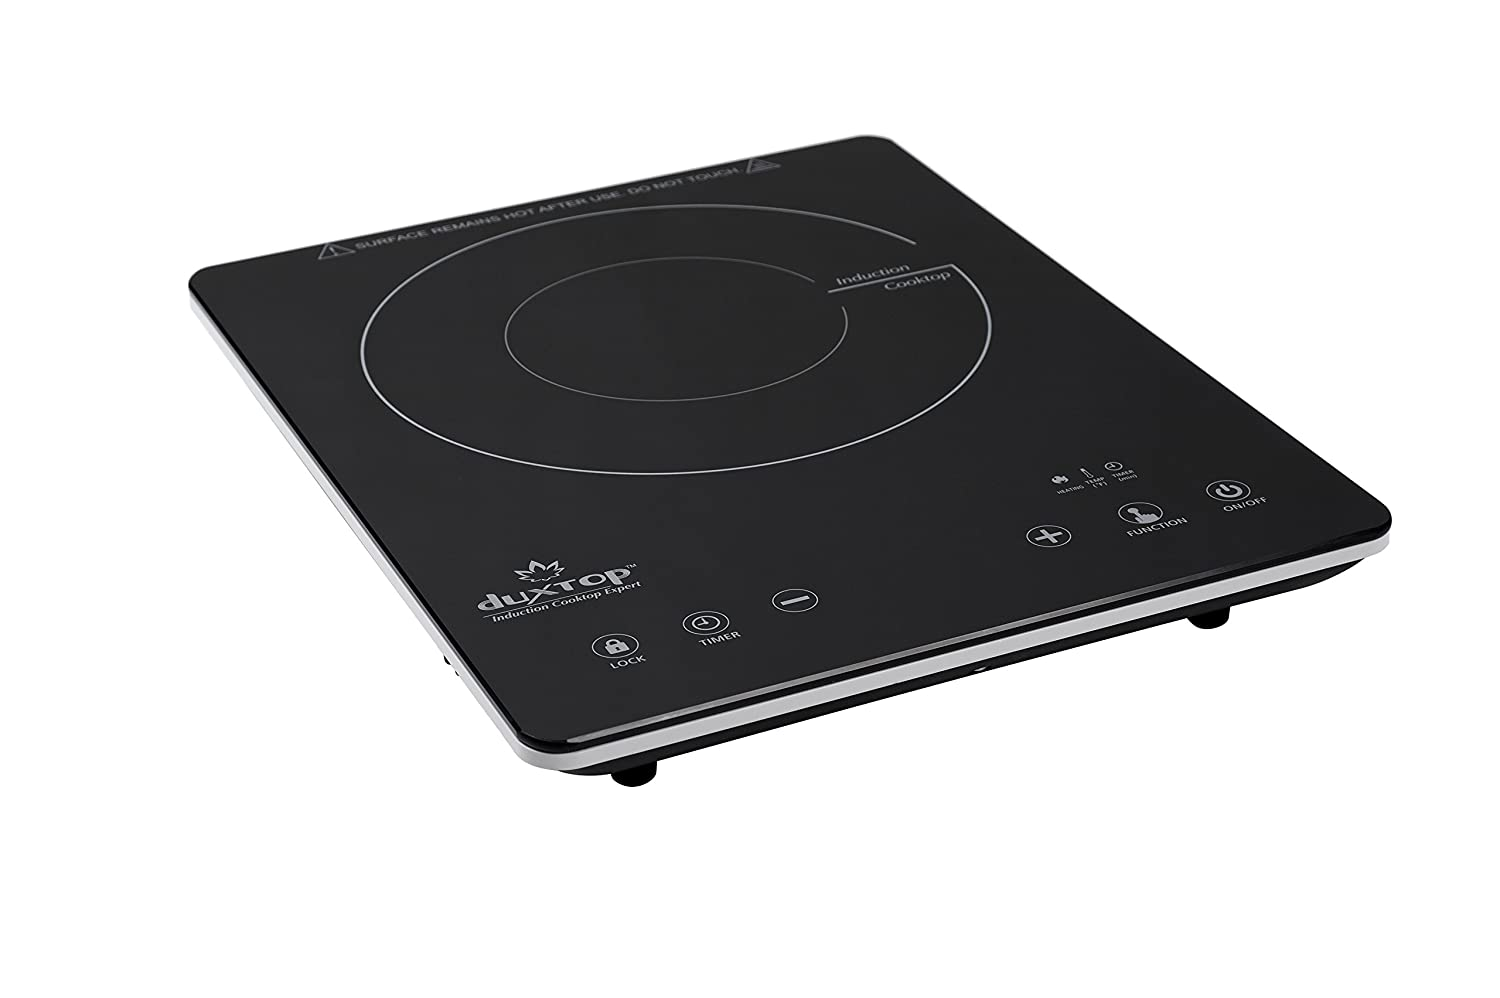 Amazon.com : DUXTOP Induction Cooktop This is the single burner induction portable stovetop we use in our bus – we love induction cooking, it's all we have!